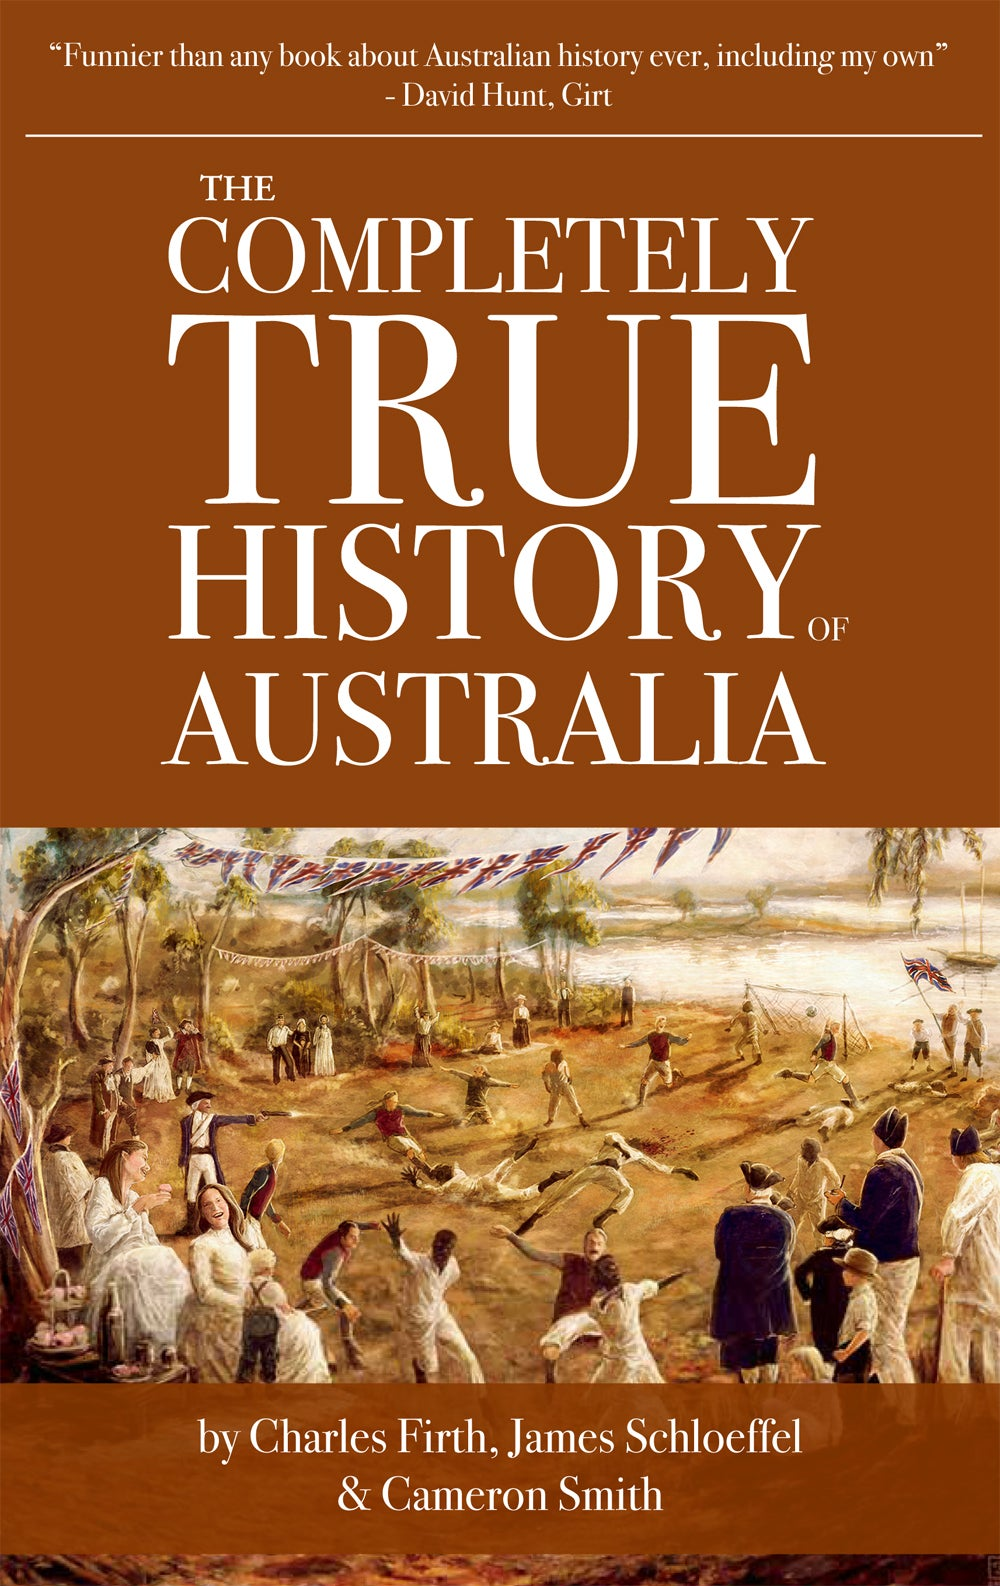 Image of The Completely True History of Australia